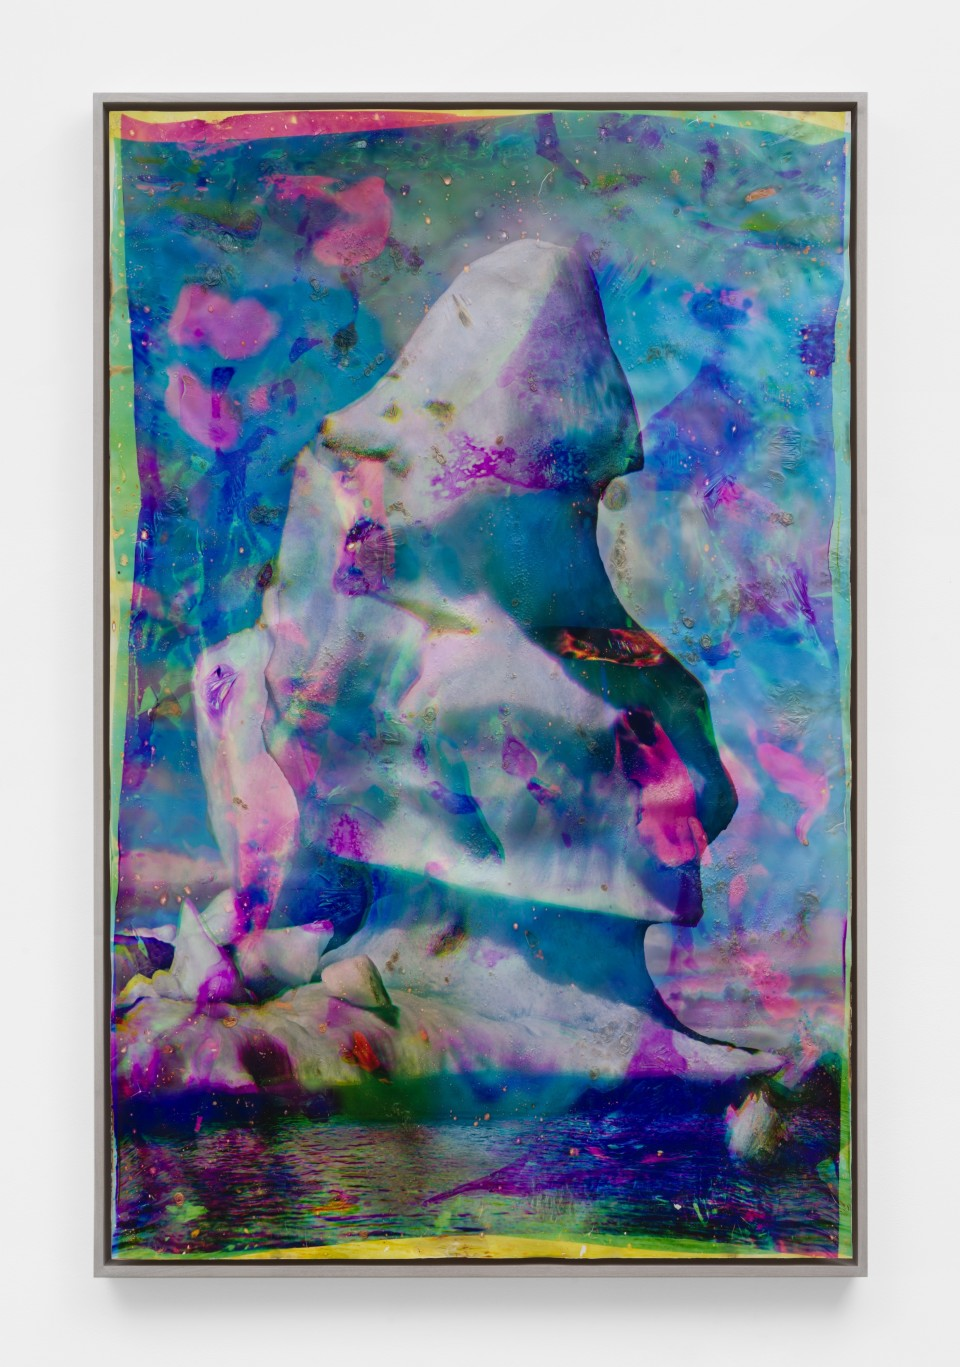 Image: Matthew Brandt  Vatnajökull MYC8, 2018-2020  signed, titled and dated verso  heated chromogenic print, with acrylic varnish and Aqua-Resin support  73 7/8 x 48 1/2 inches (187.6 x 123.2 cm)